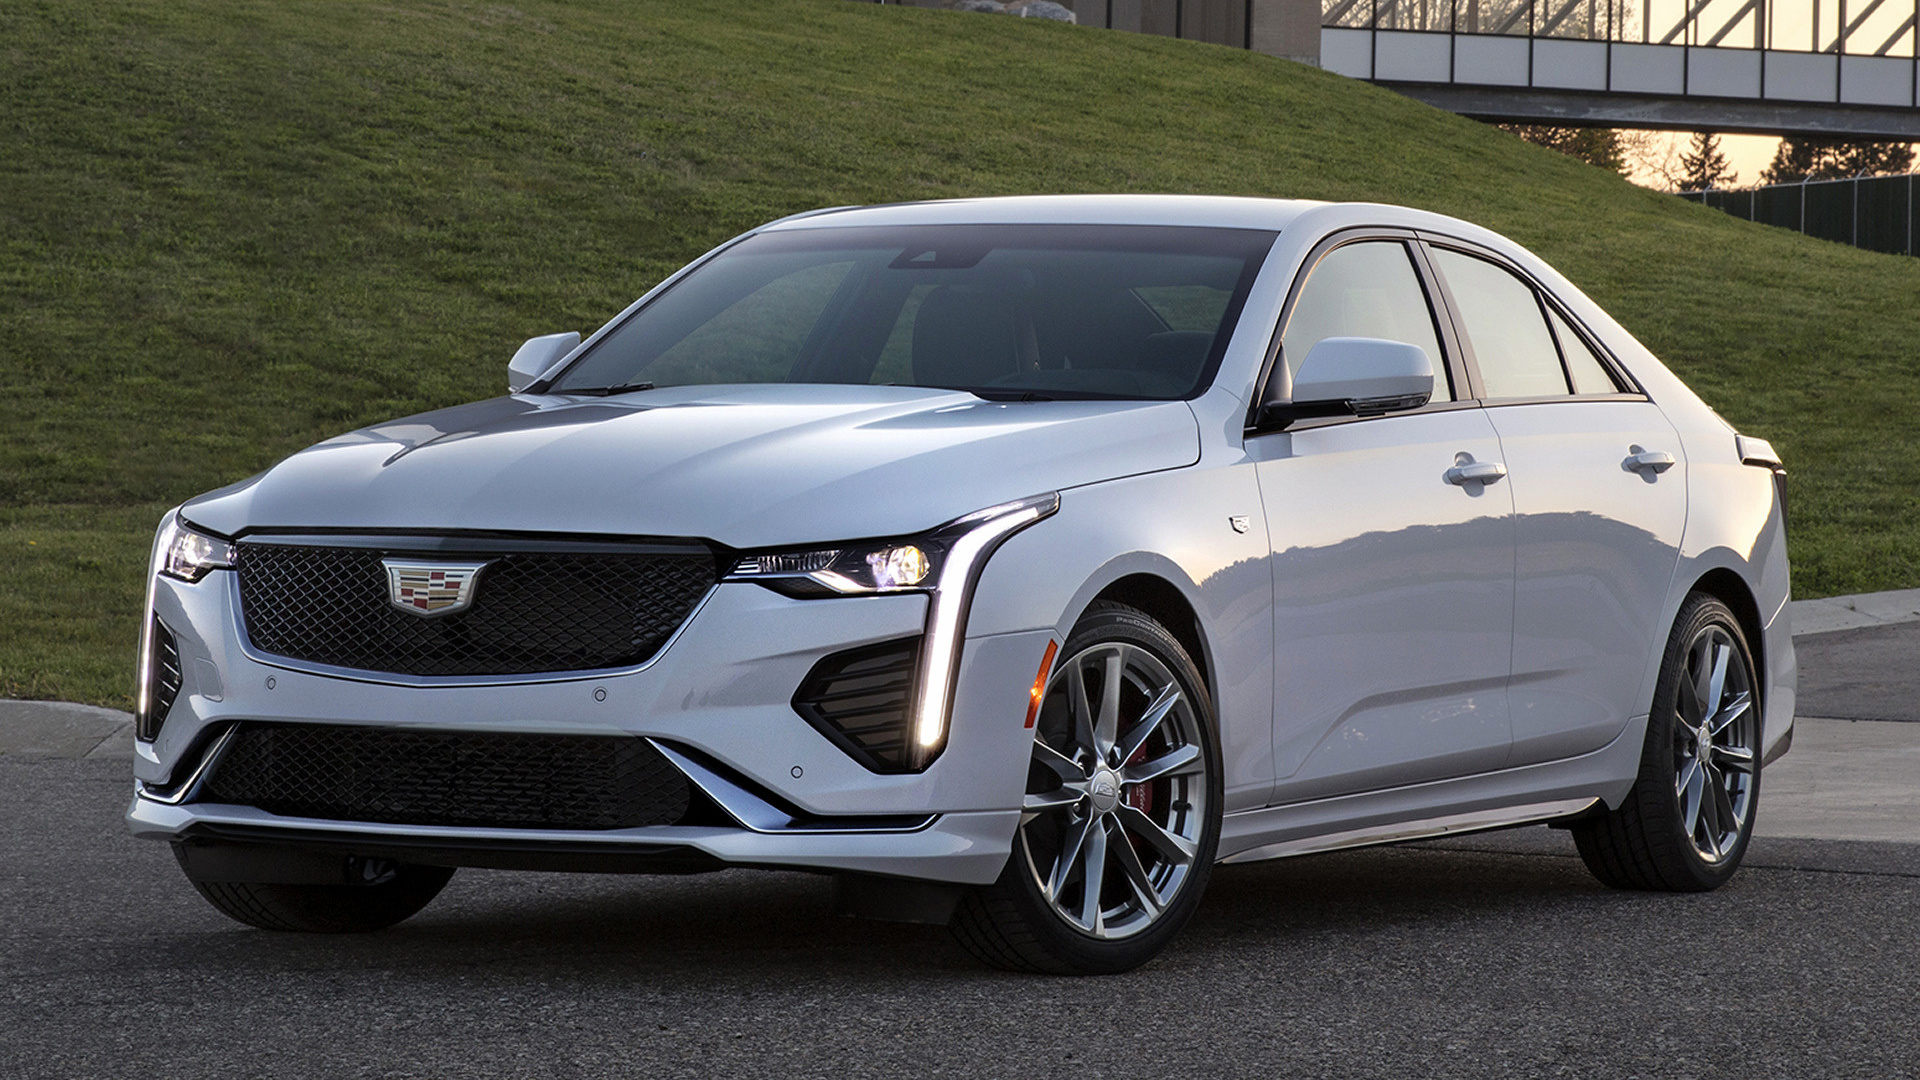 2020 cadillac ct4 sport - wallpapers and hd images | car pixel